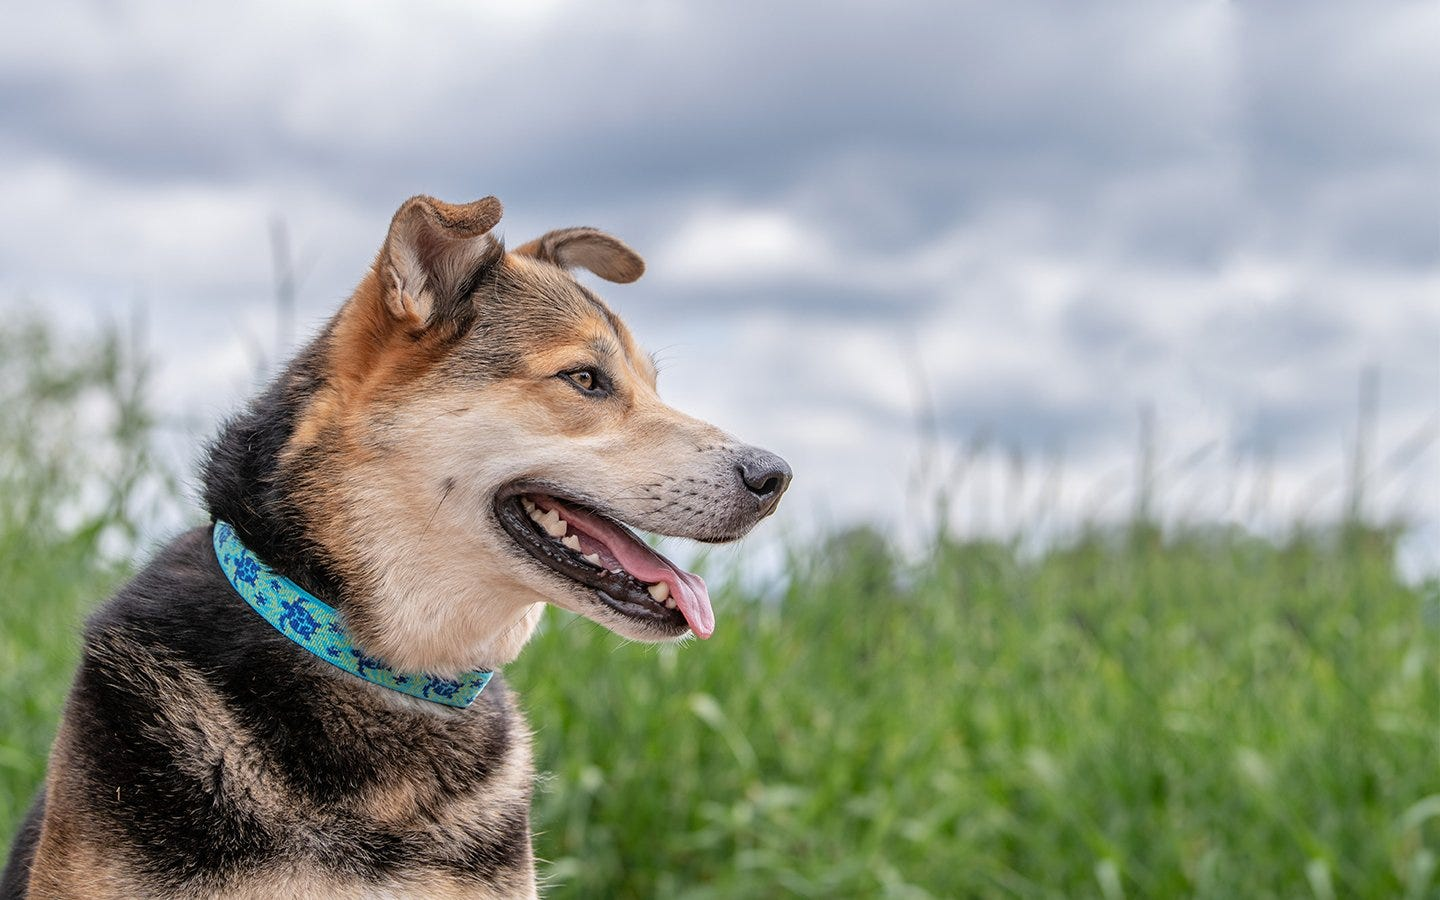 A dog sitting in a field, wearing a colorful study collar.